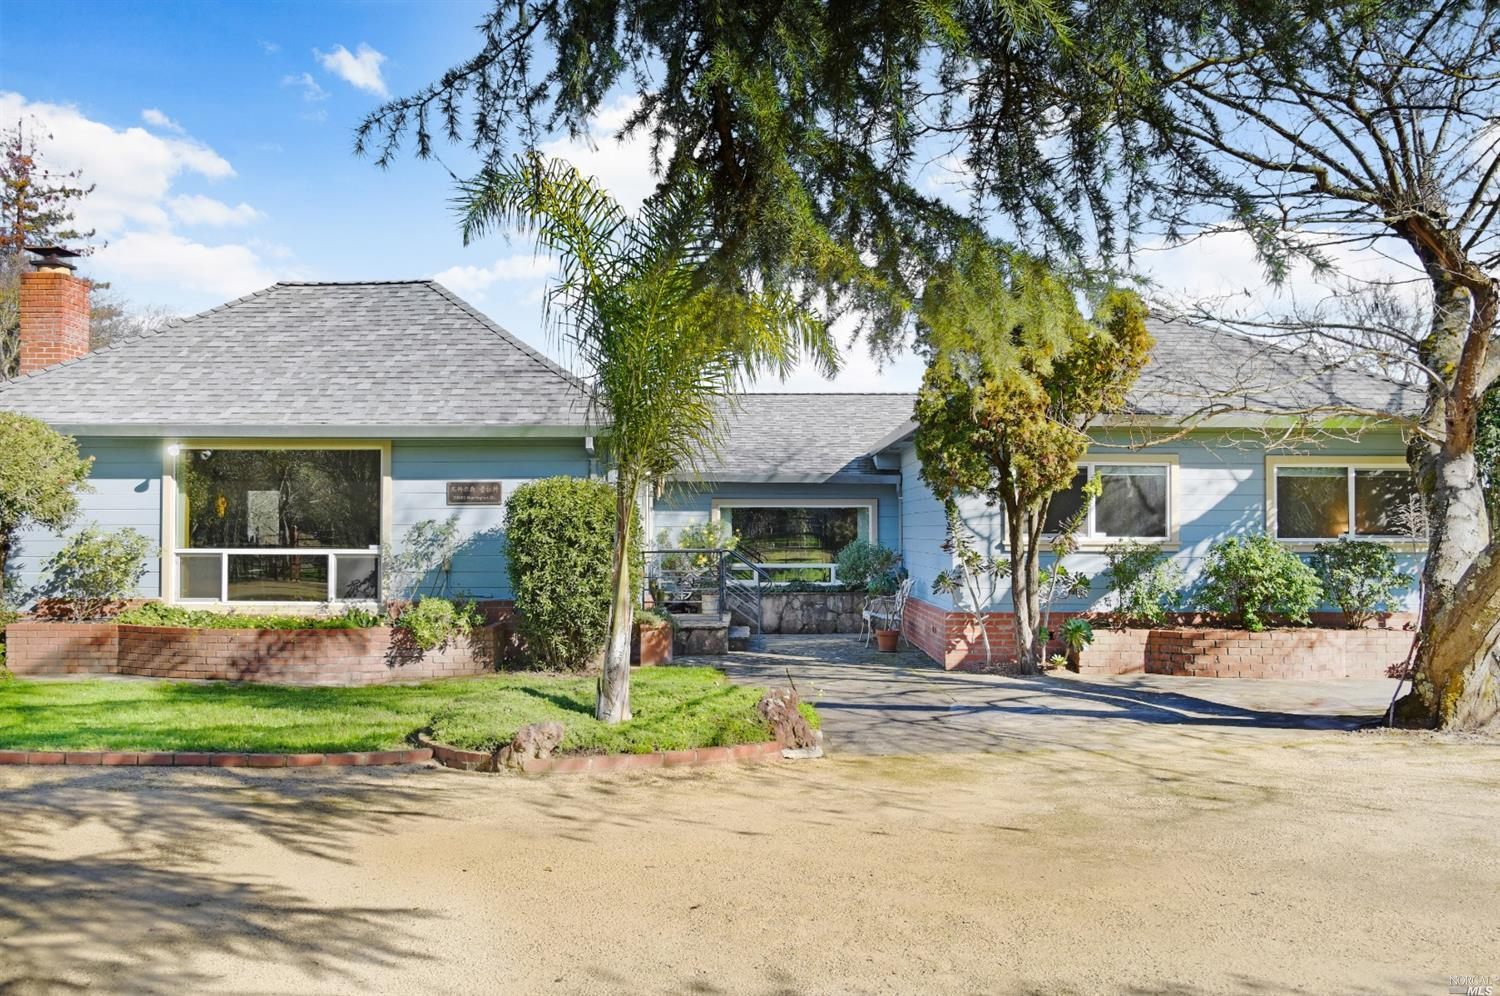 Close to downtown Sonoma, and only a short distance to a handful of world renowned wineries.  This beautiful mid century ranch home on 1.85 acres offers 2,112 sq. ft. of comfortable living space with three bedrooms, two and a half baths, an updated central heat and AC system, and a 950 sq. ft. attached garage/shop.  Features include a 2,000 sq. ft. outdoor BBQ area, 320 sq. ft. steel storage structure with freezer room and car port, 400 sq. ft. animal shelter with fenced gated areas, poultry aviary, and a custom built smoke house. Direct access to both Leveroni Rd. and Harrington Dr. adds to the multiple uses of this unique property. Plenty of usable space and multiple outbuildings make this the perfect property for gardening, a vineyard, s